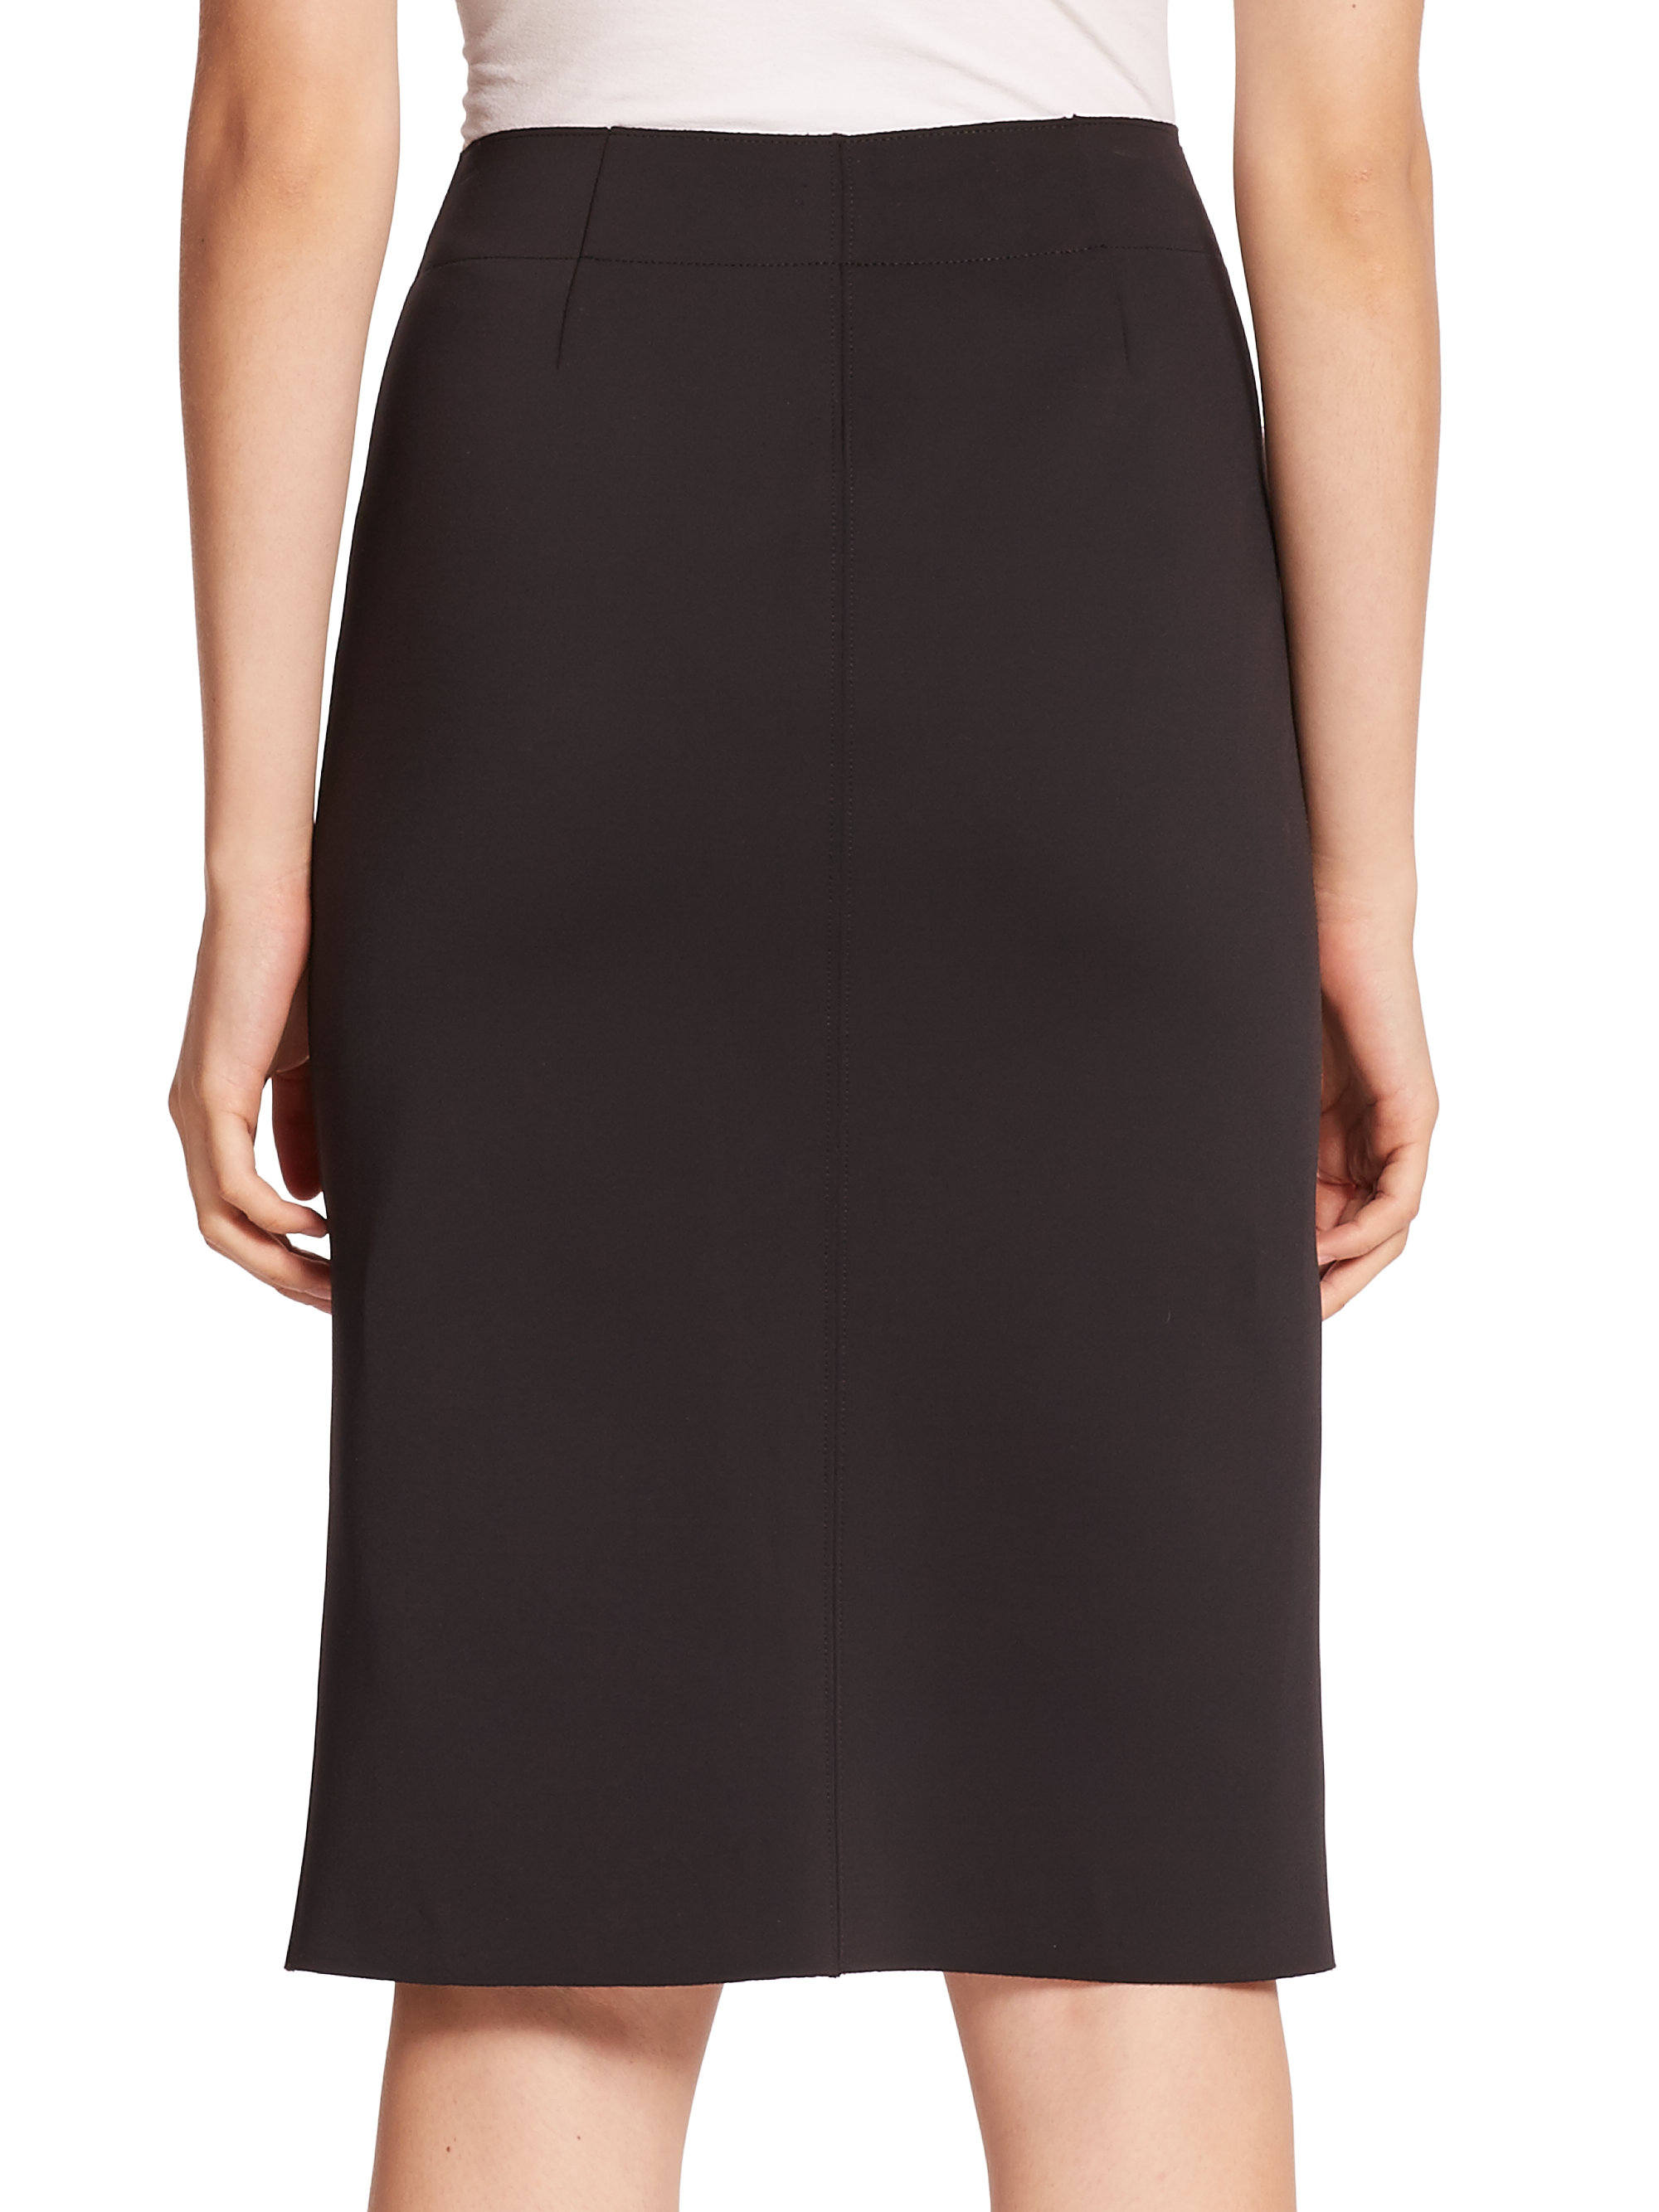 Helmut lang Scuba Pencil Skirt in Black | Lyst